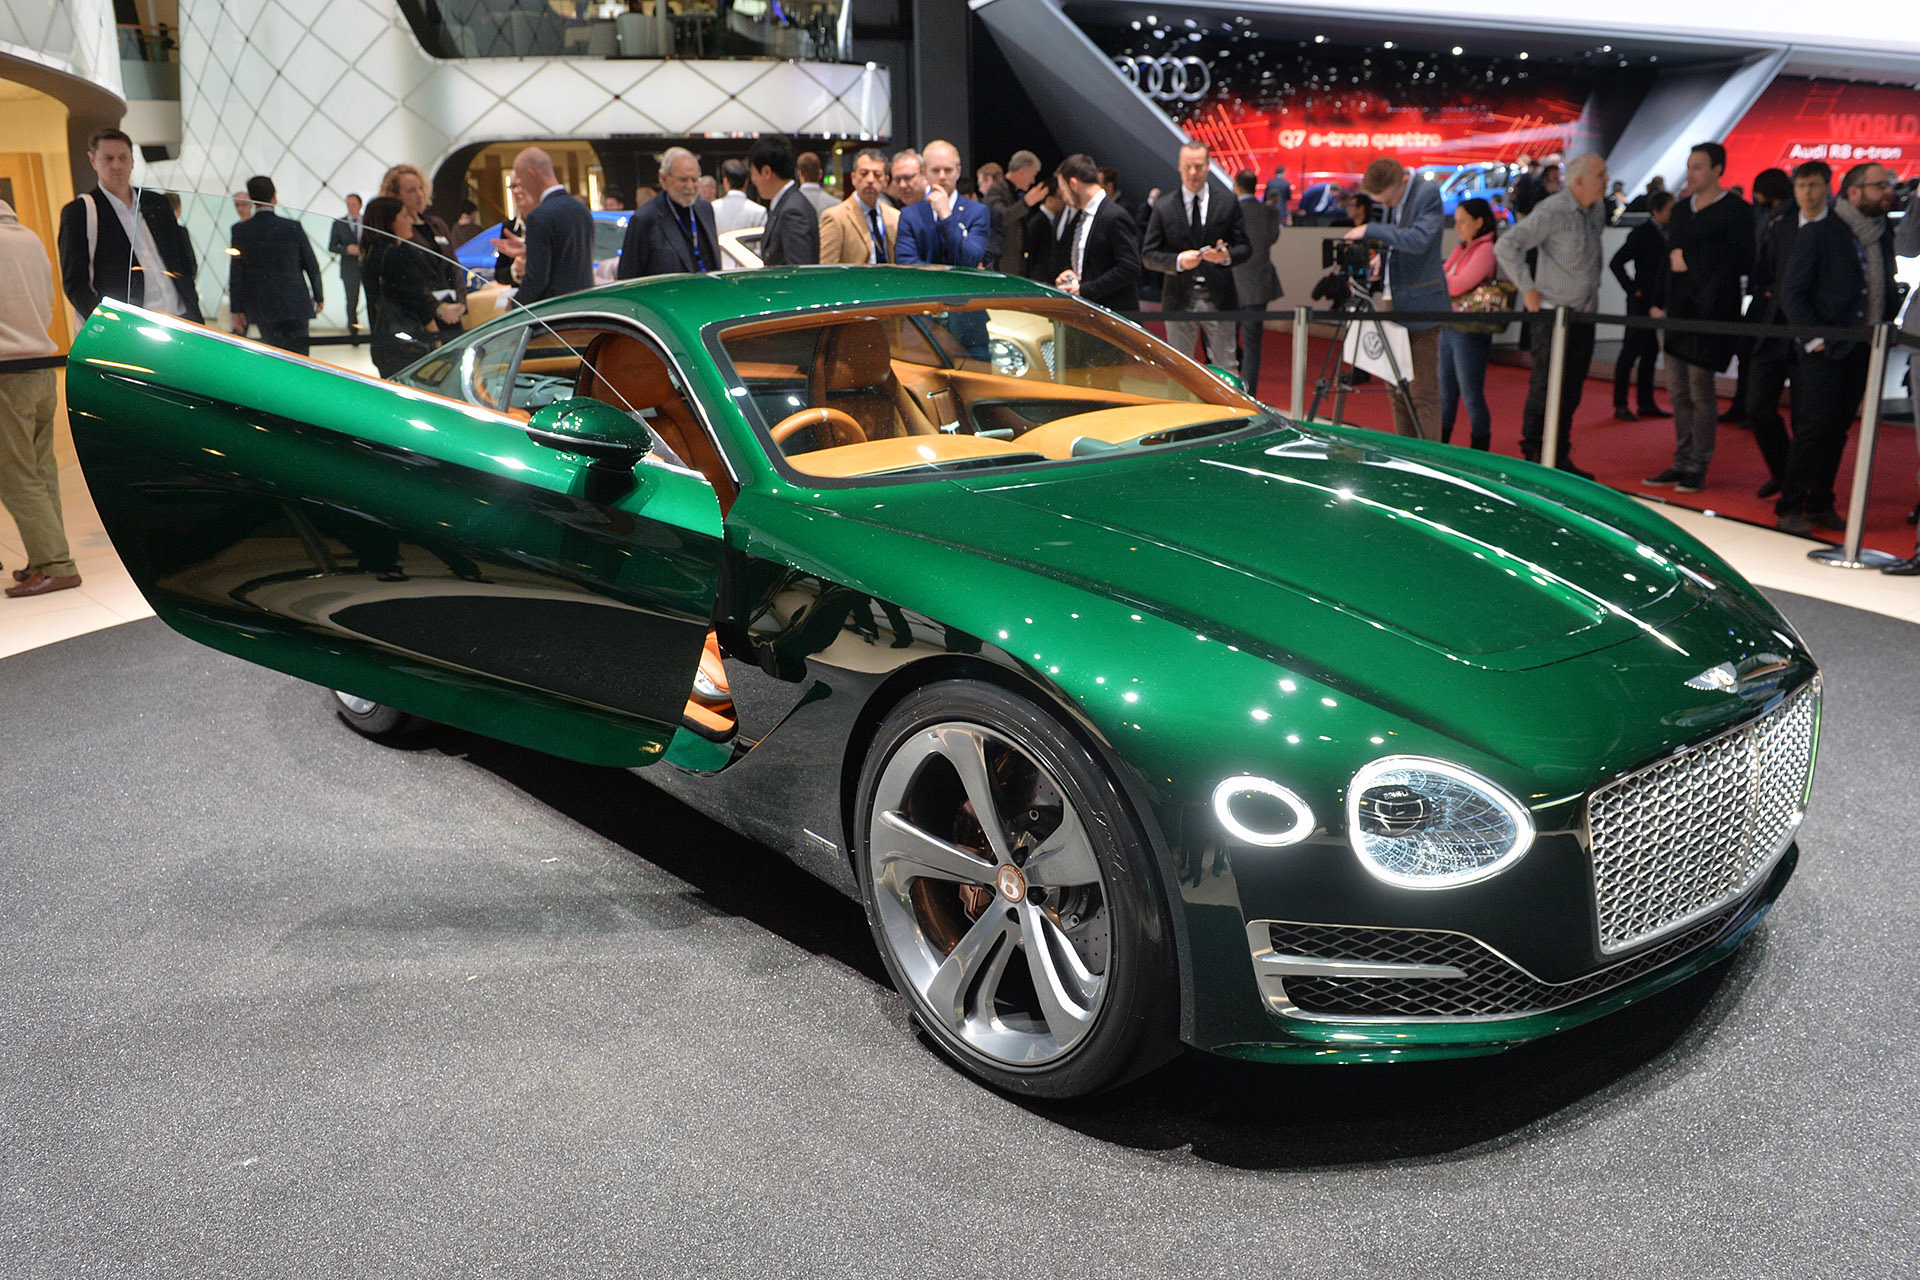 Bentley exp 10 speed 6 geneva 2